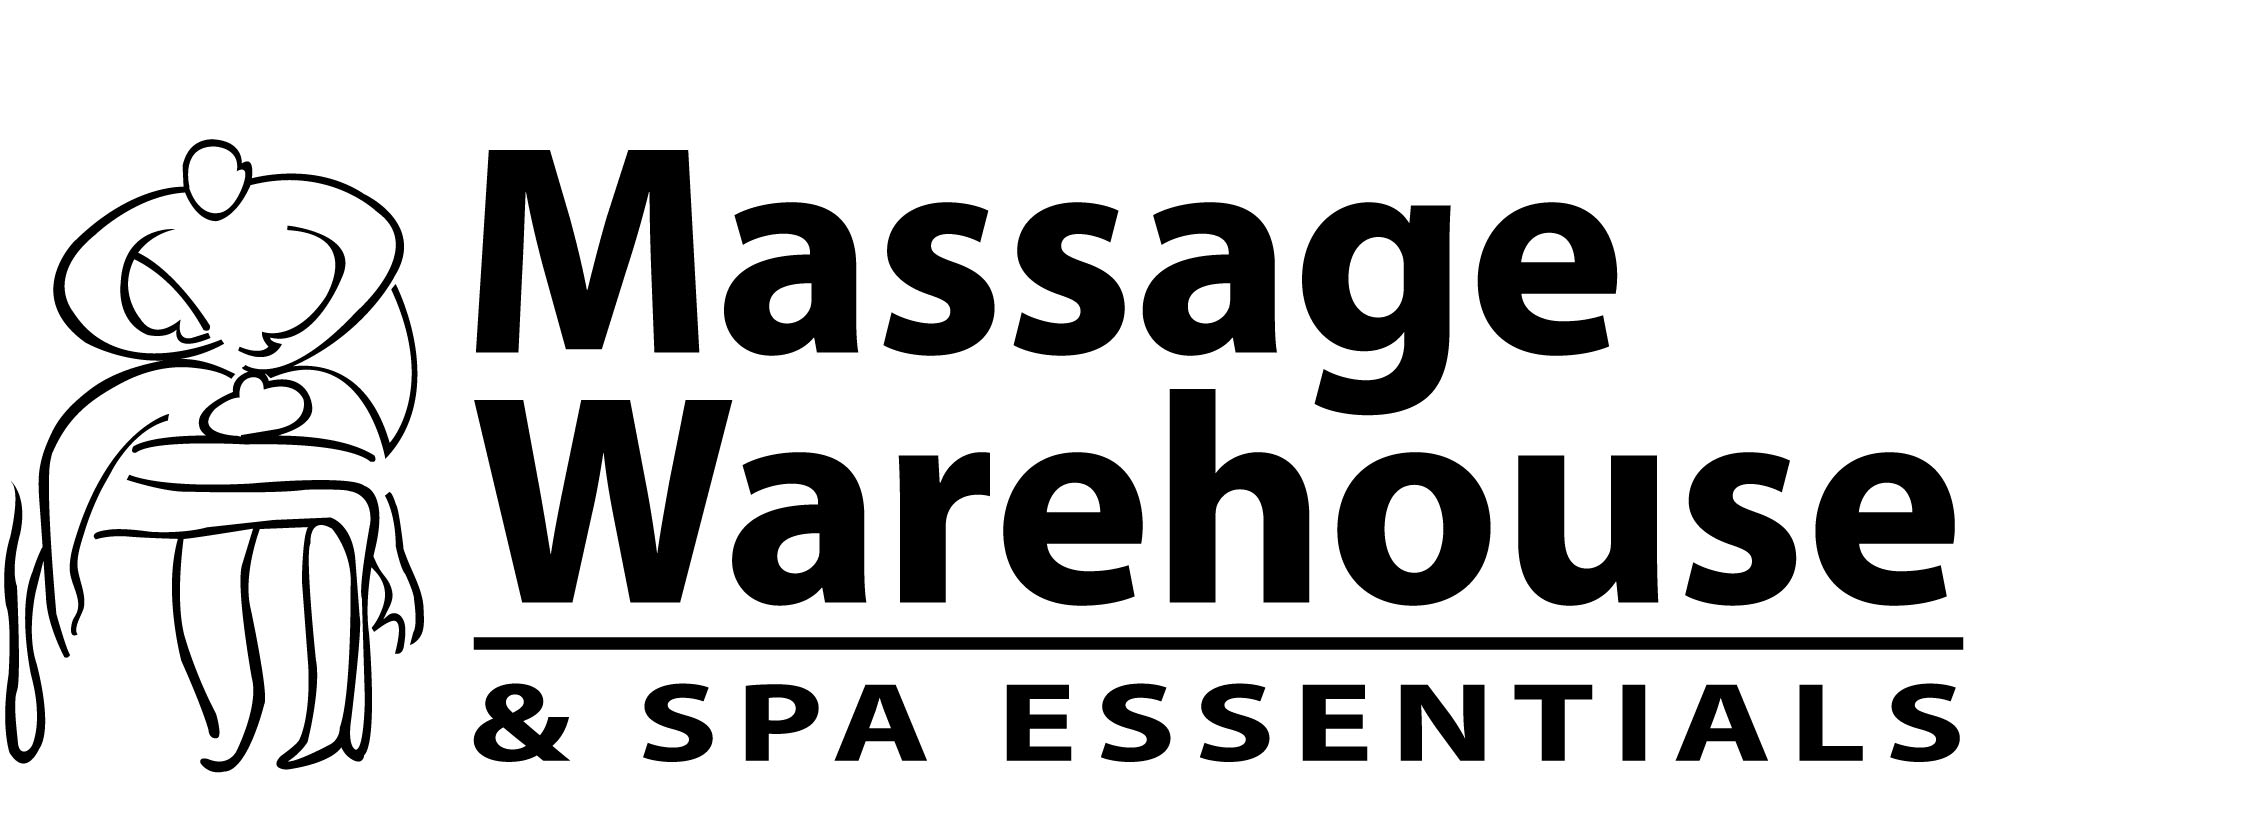 Massage Warehouse Sanctuary Donates More than $10,000 to Massage Therapy Foundation, MASSAGE Magazine